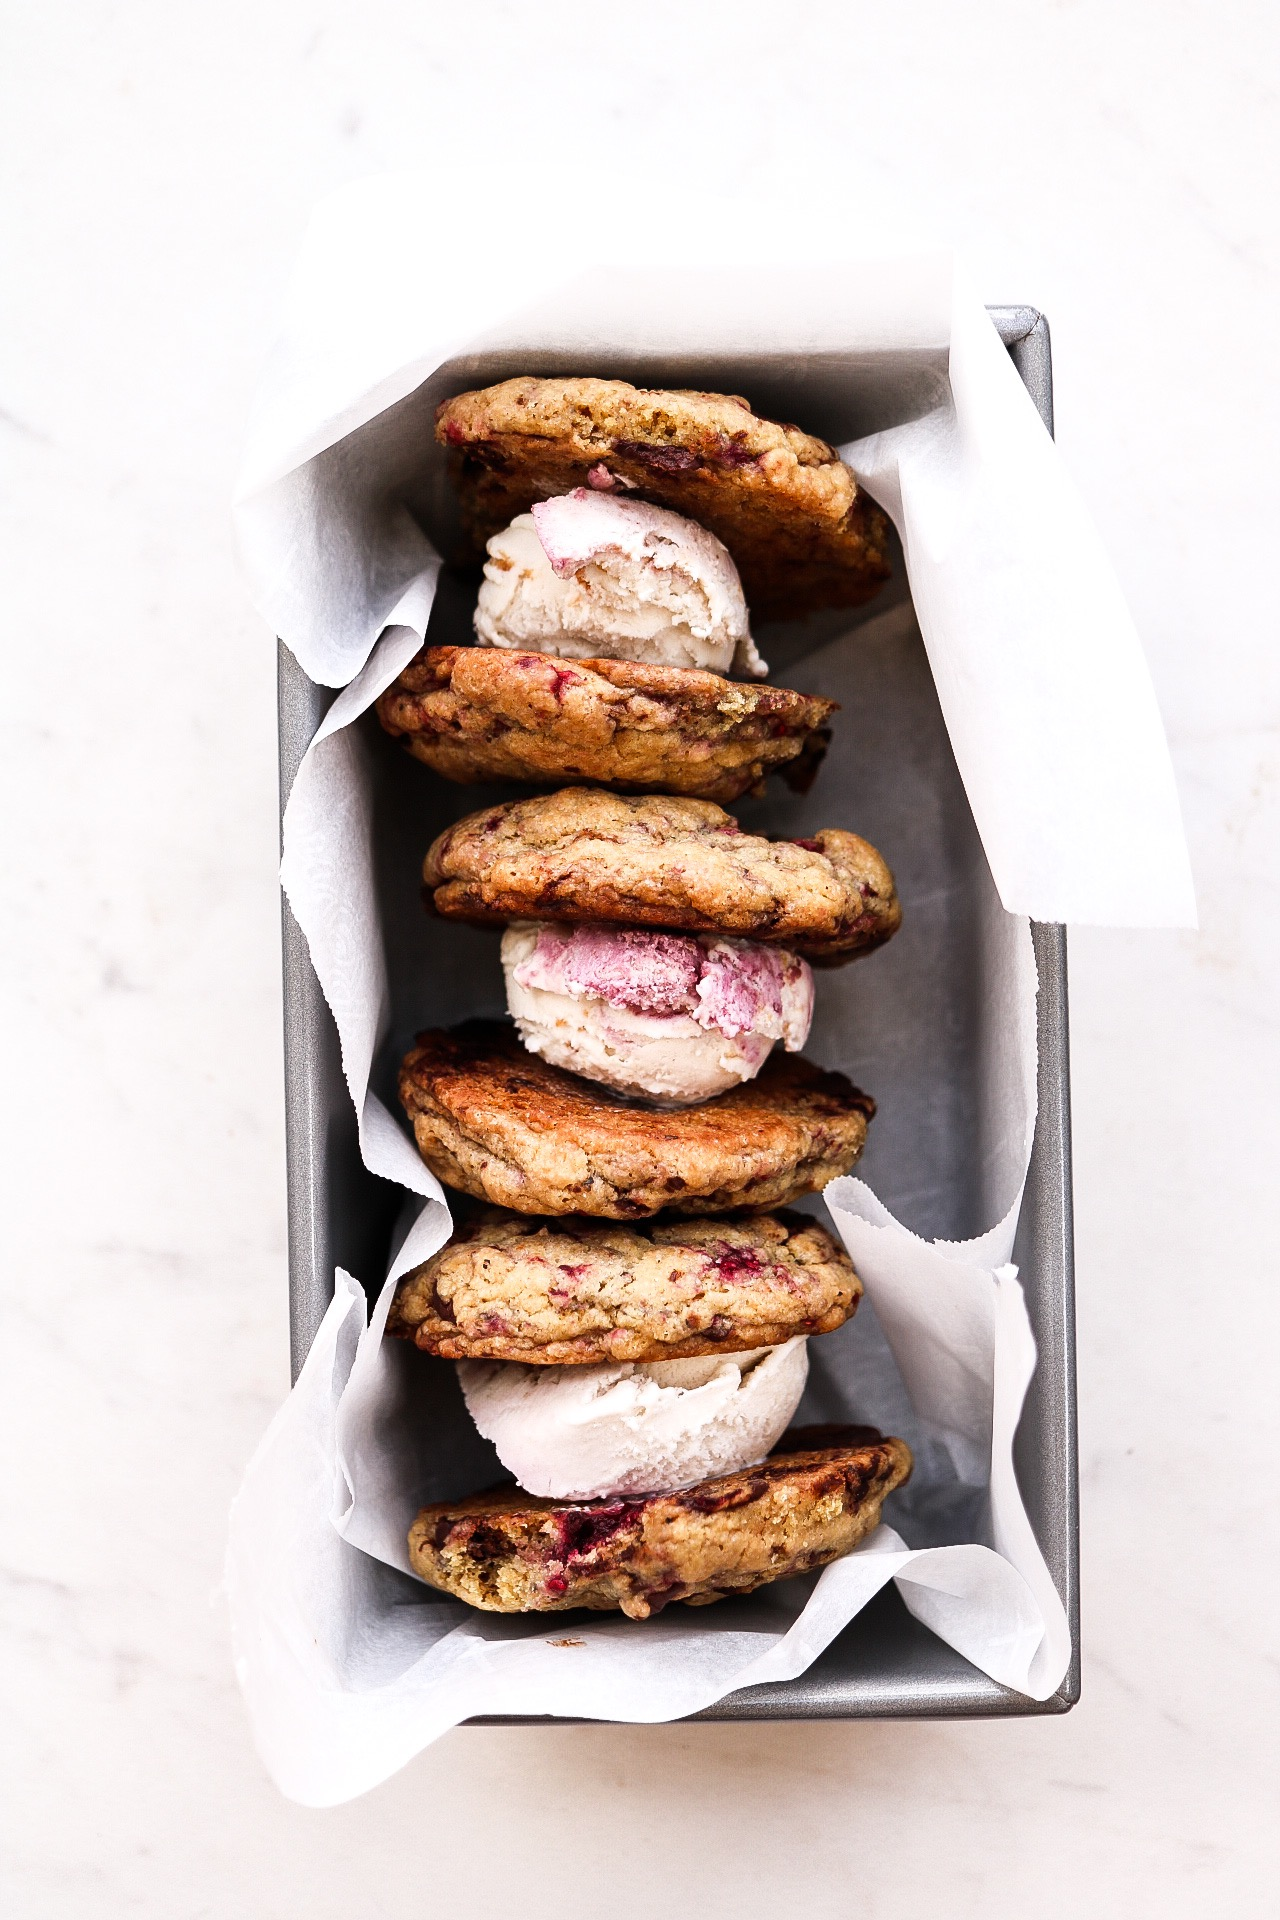 Raspberry Chocolate Chunk Ice Cream Sandwiches - INGREDIENTS:1 1/3 cup all purpose or spelt flour1/2 tsp baking powder1/4 tsp baking soda1/2 tsp salt1/3 cup melted coconut oil2/3 cup brown sugar1/4 cup warm water1/3 frozen or fresh raspberries1 bar Alter Eco 90% dark chocolate, choppedINSTRUCTIONS:Preheat your oven to 350F. Line a baking sheet with parchment paper and set aside. In a medium bowl, whisk together the flour, salt, baking soda, and baking powder. In another bowl, mix together the sugar, oil, and water. Combine the wet mixture to the dry, and fold in the chopped dark chocolate and raspberries. Scoop your cookies onto the baking sheet using a cookie scooper, or a tablespoon. Bake for about 11-12 minutes, making sure they're golden but still a bit soft. Allow the to cool before stuffing with ice cream!